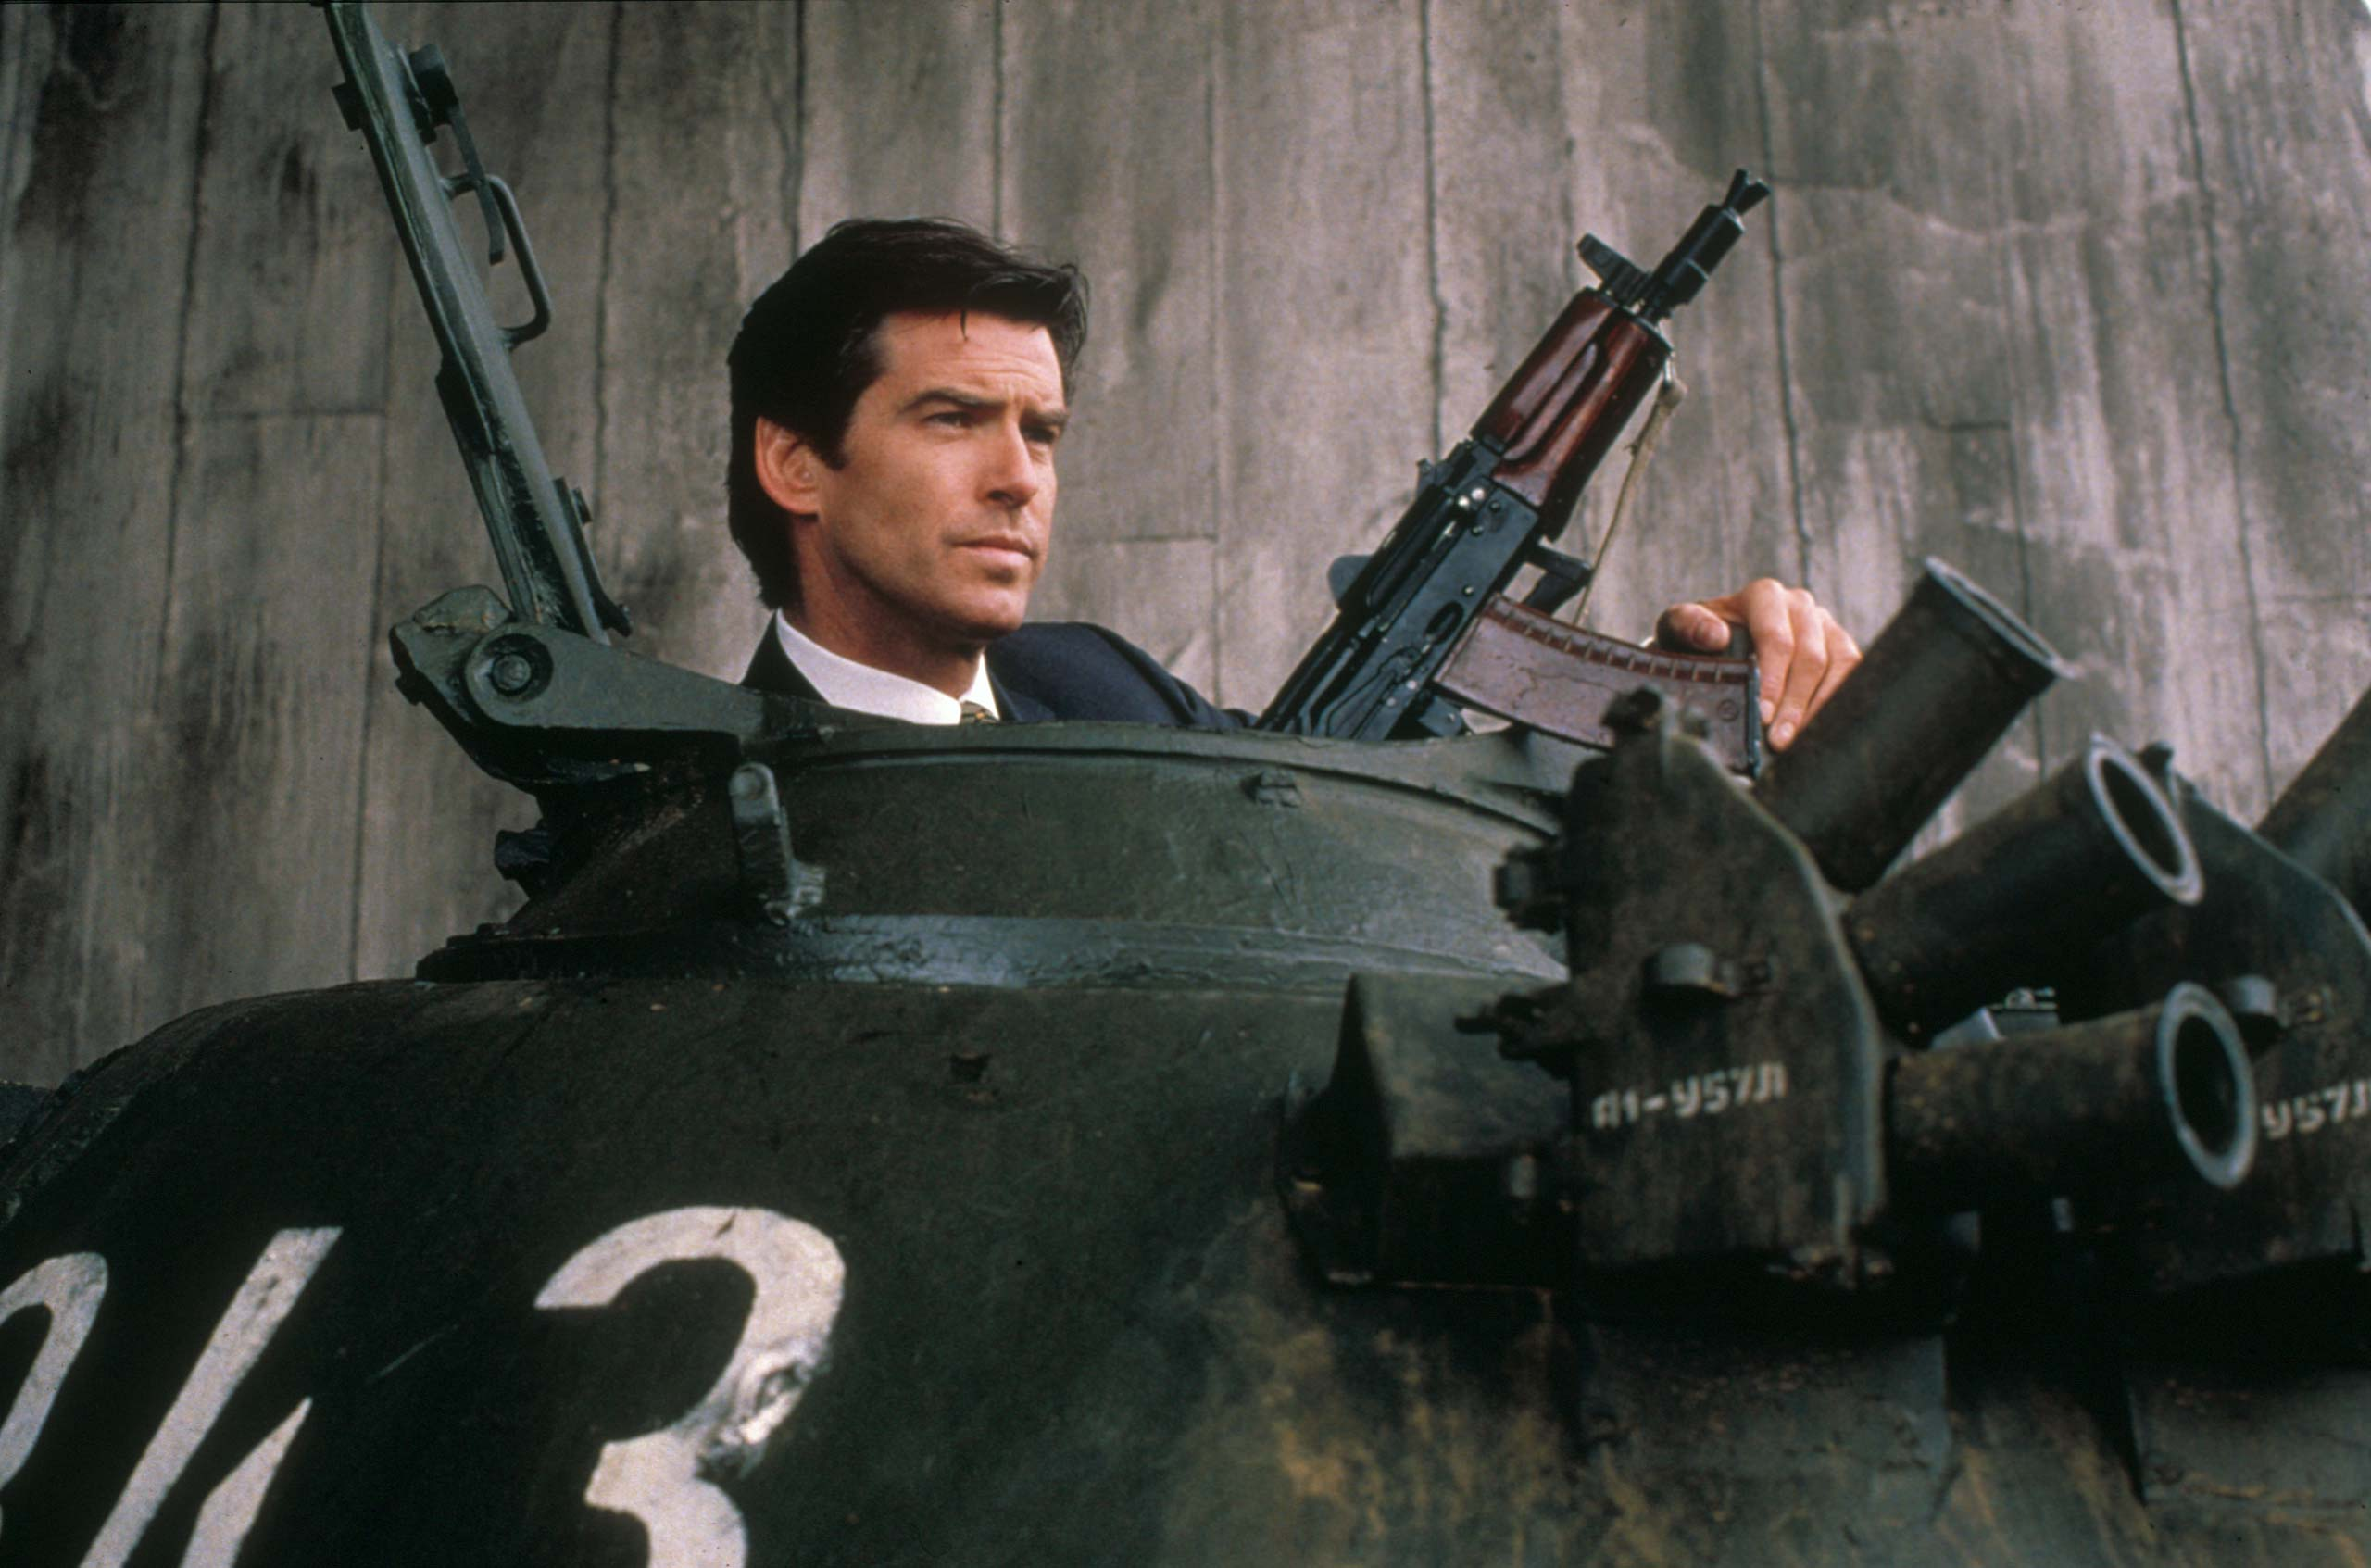 <strong><i>GoldenEye</i> (1995) - Pierce Brosnan</strong>